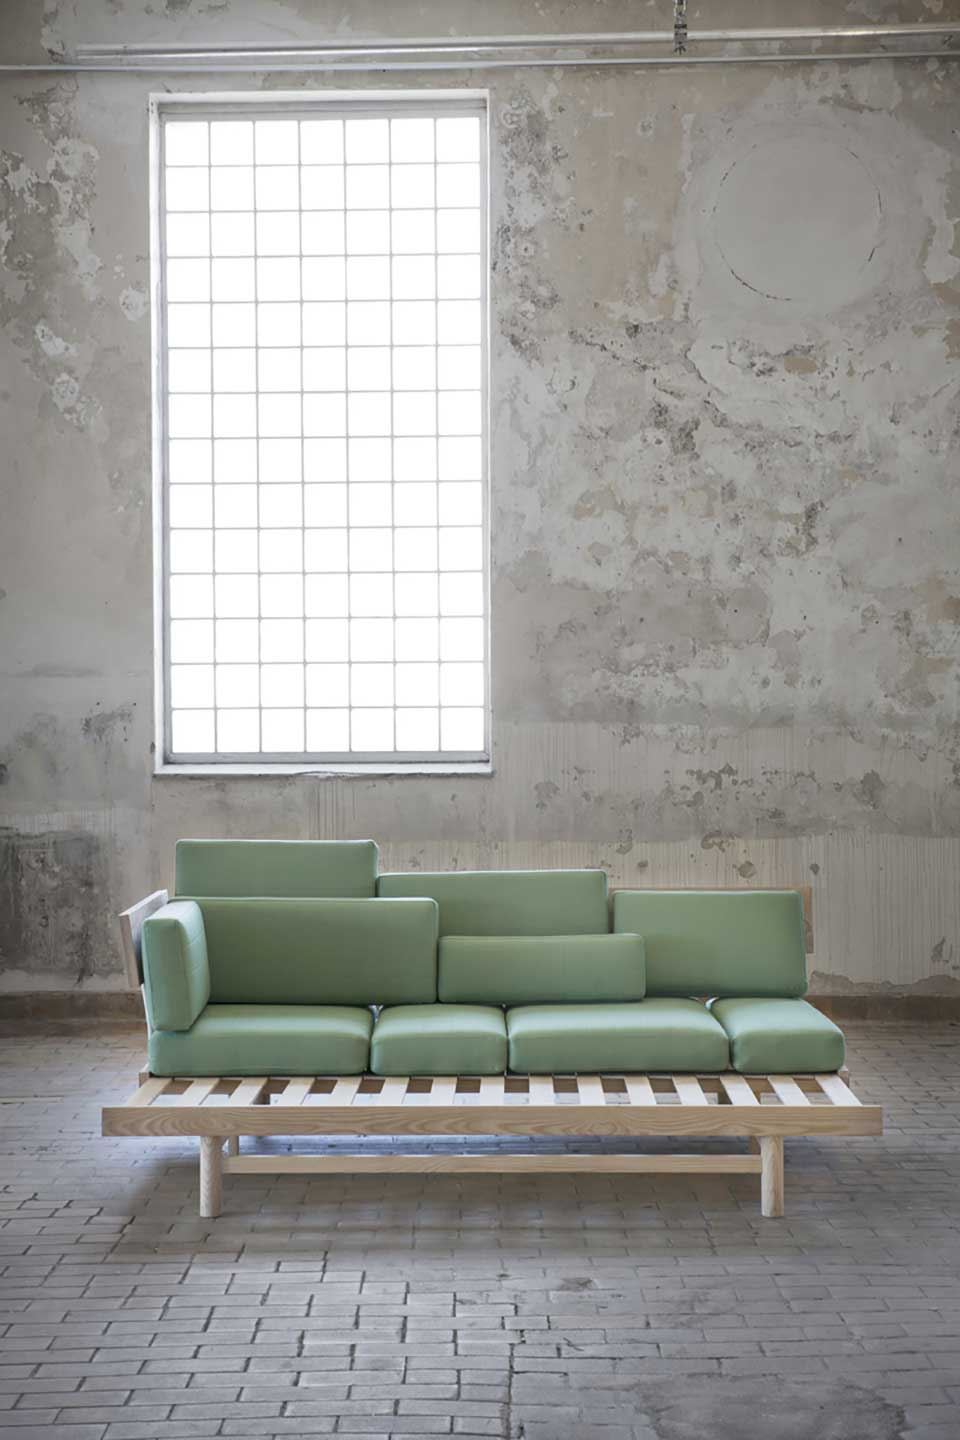 space-efficient-furniture-by-silje-nesdel-10